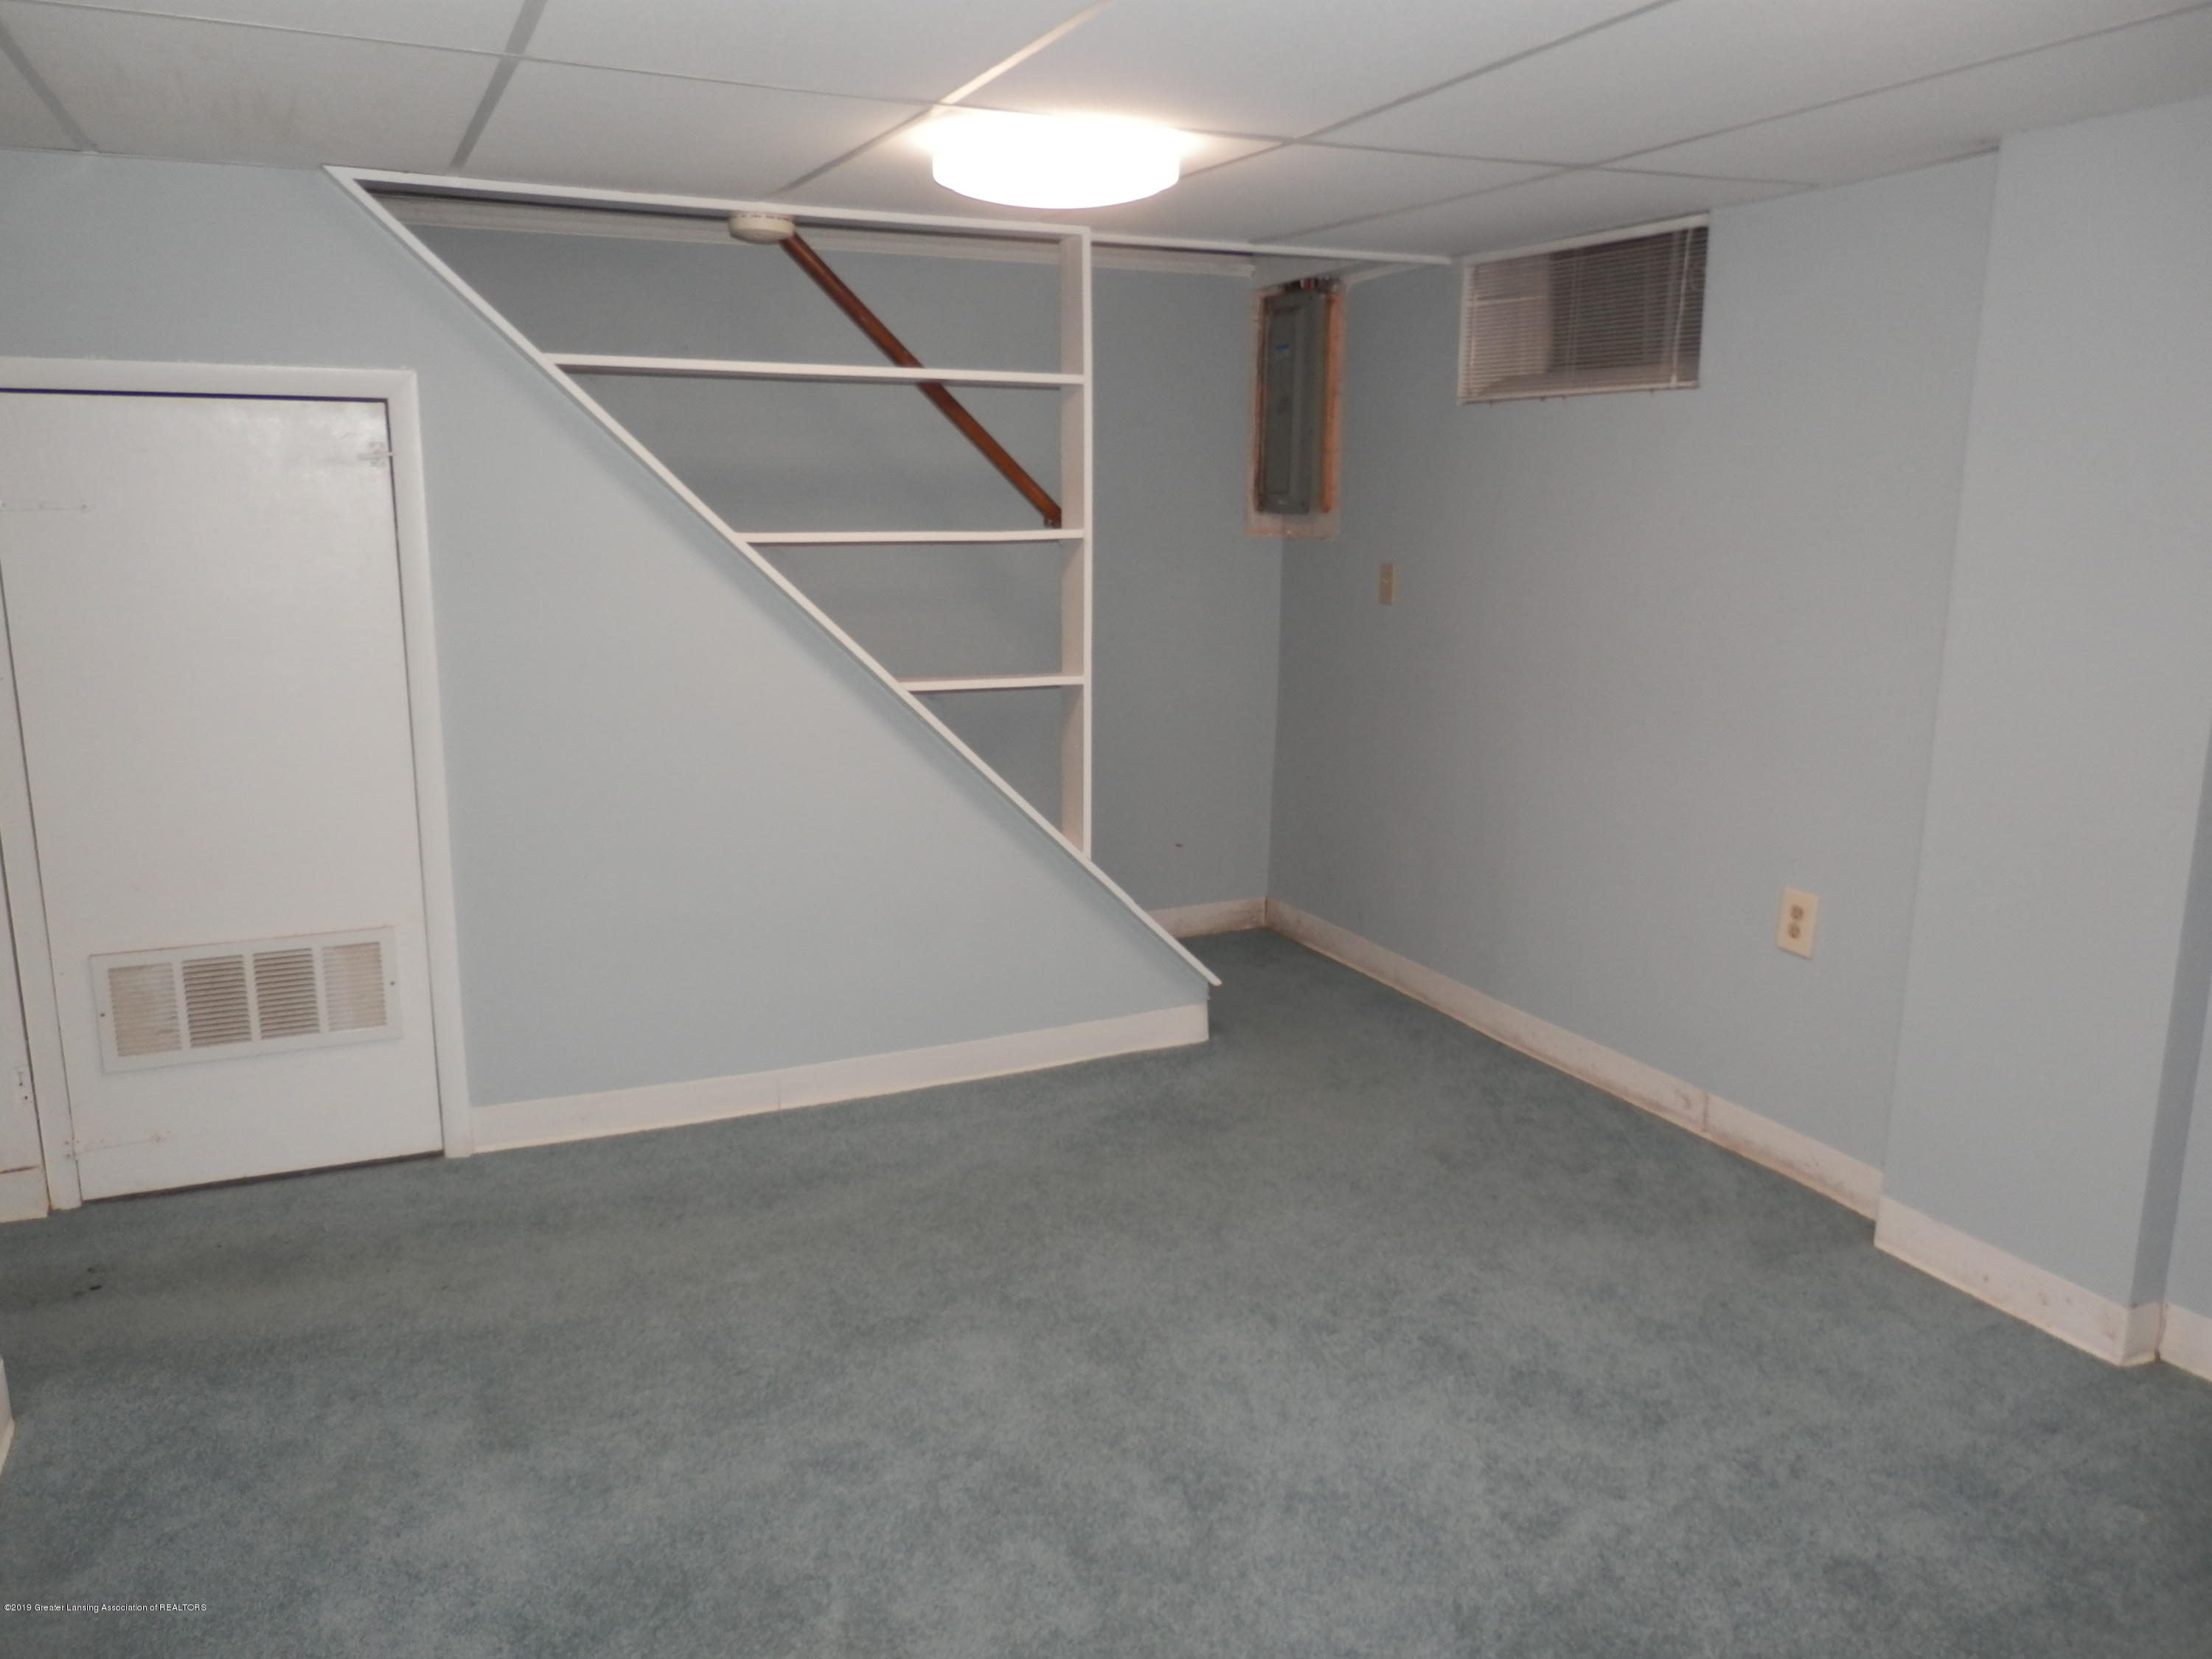 352 Collingwood Dr - Basement stairway - 17